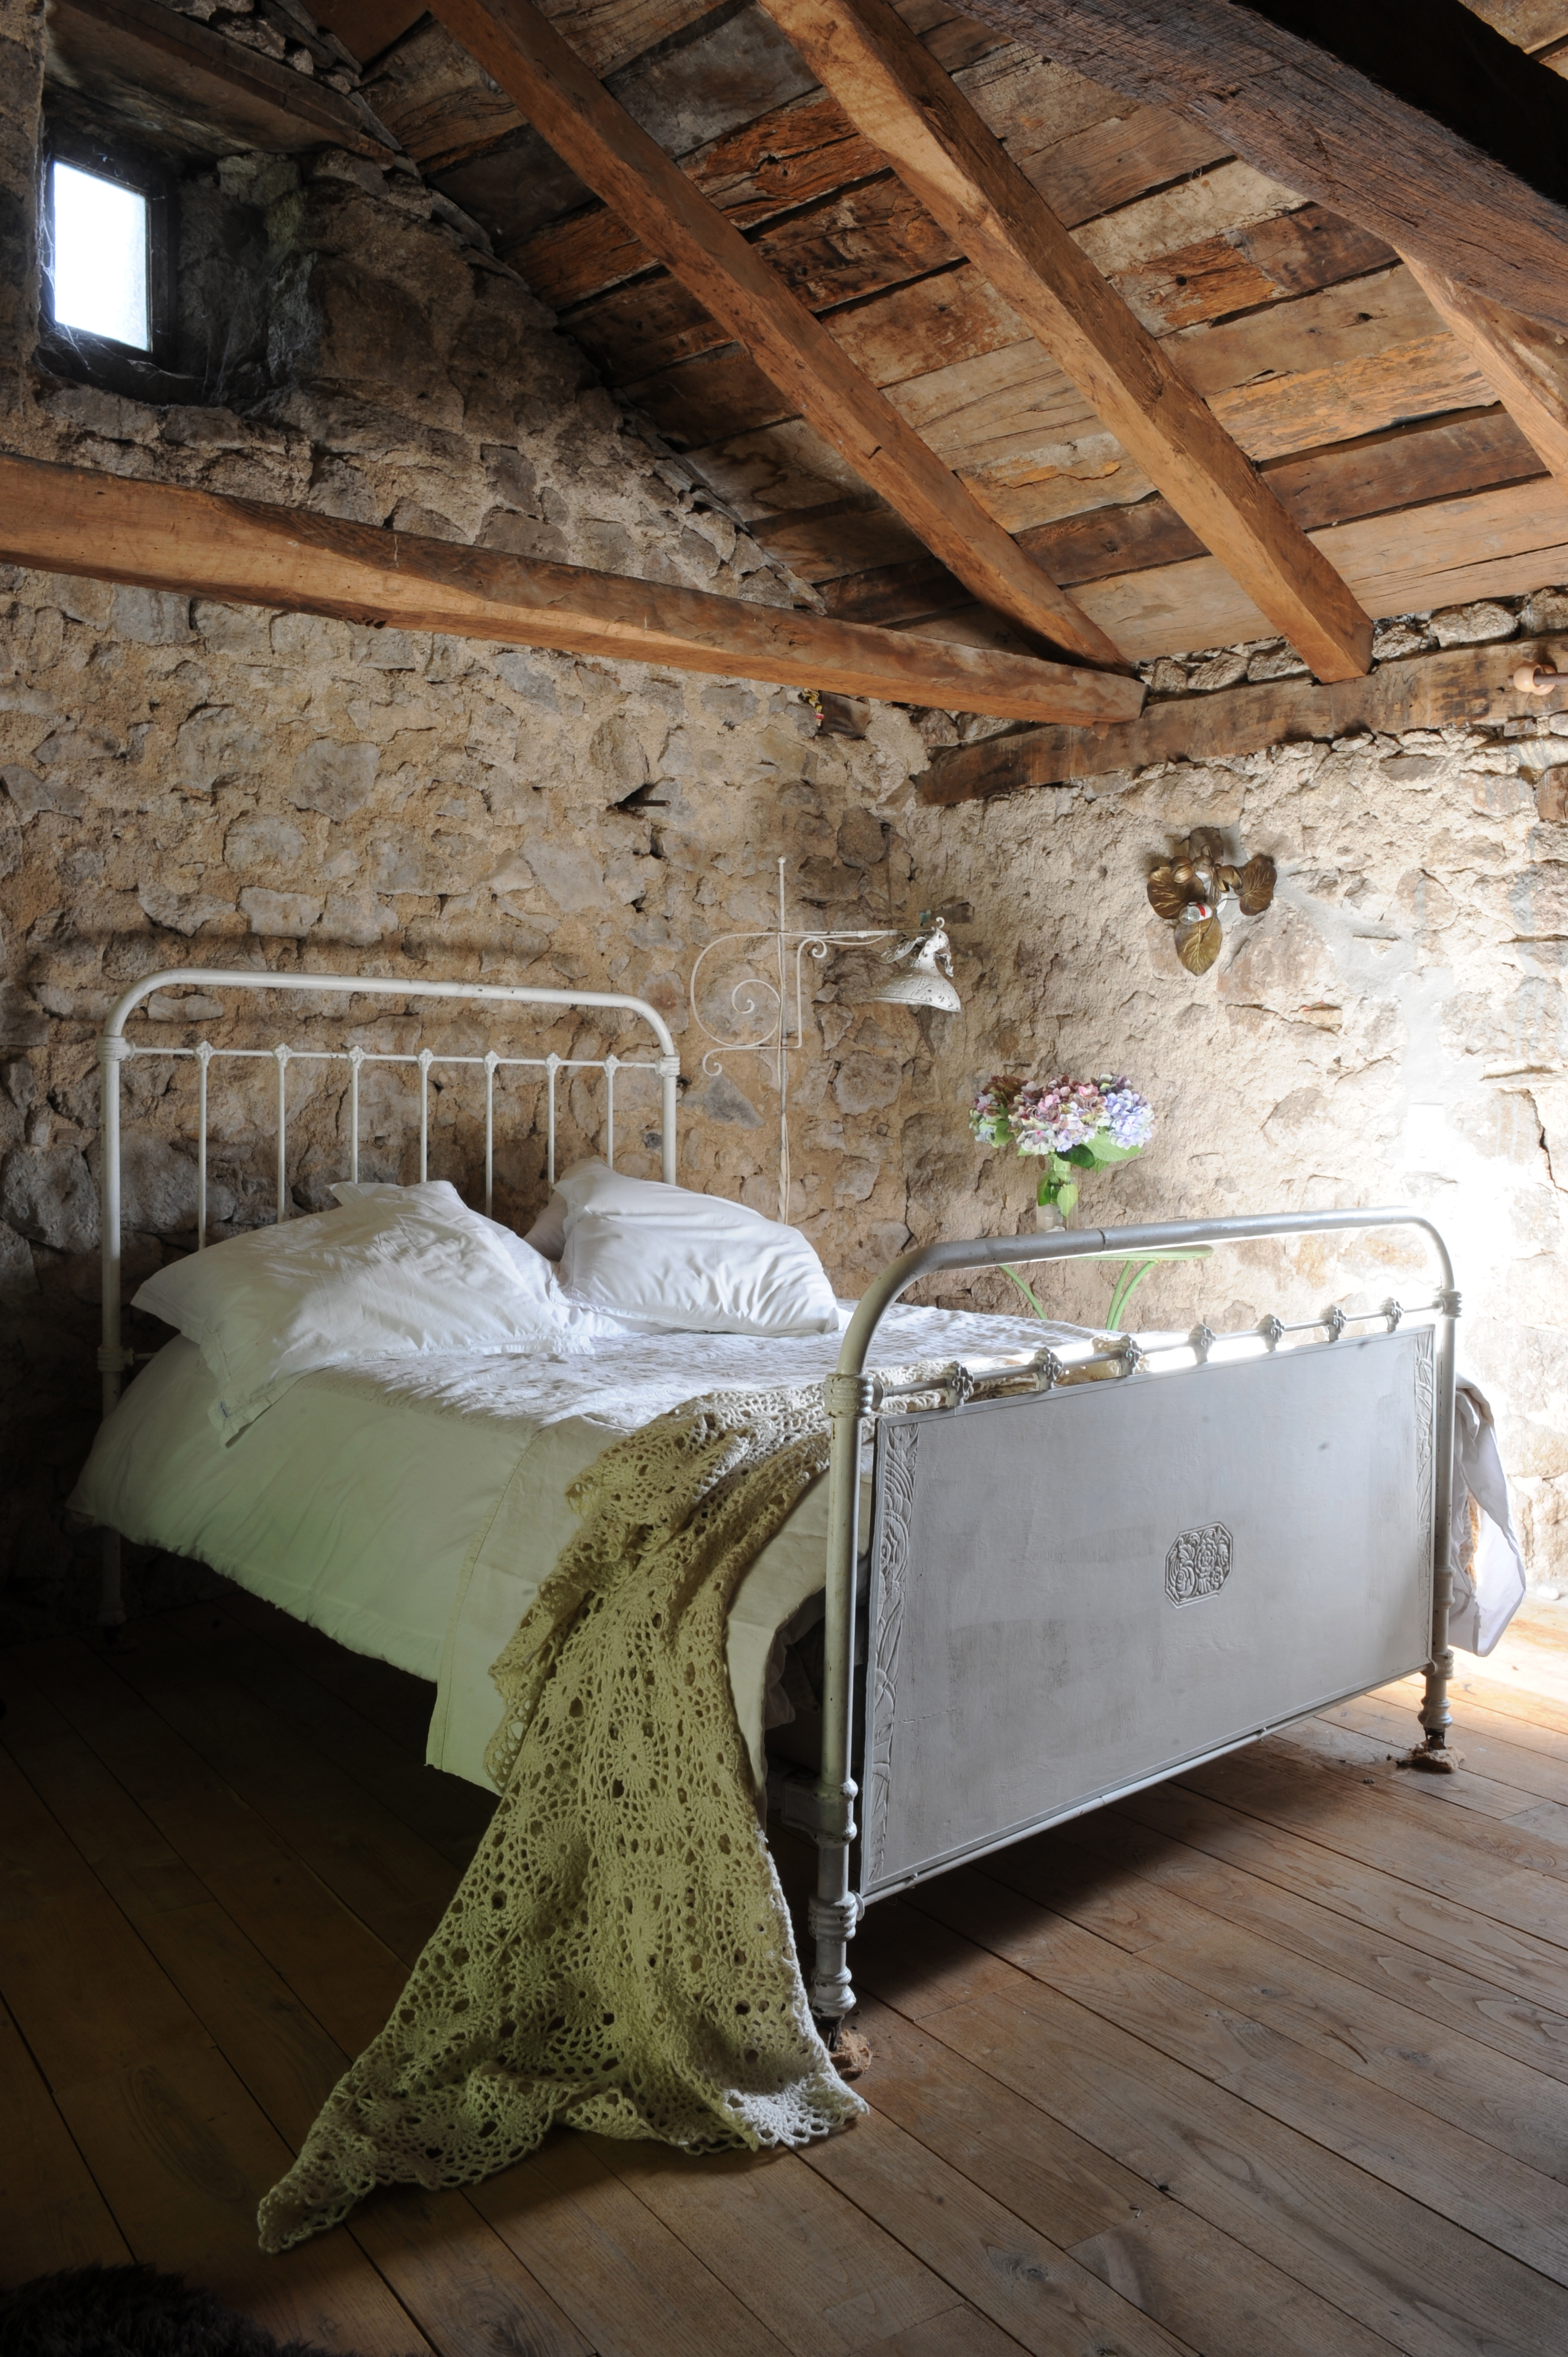 A bed in a French farmhouse